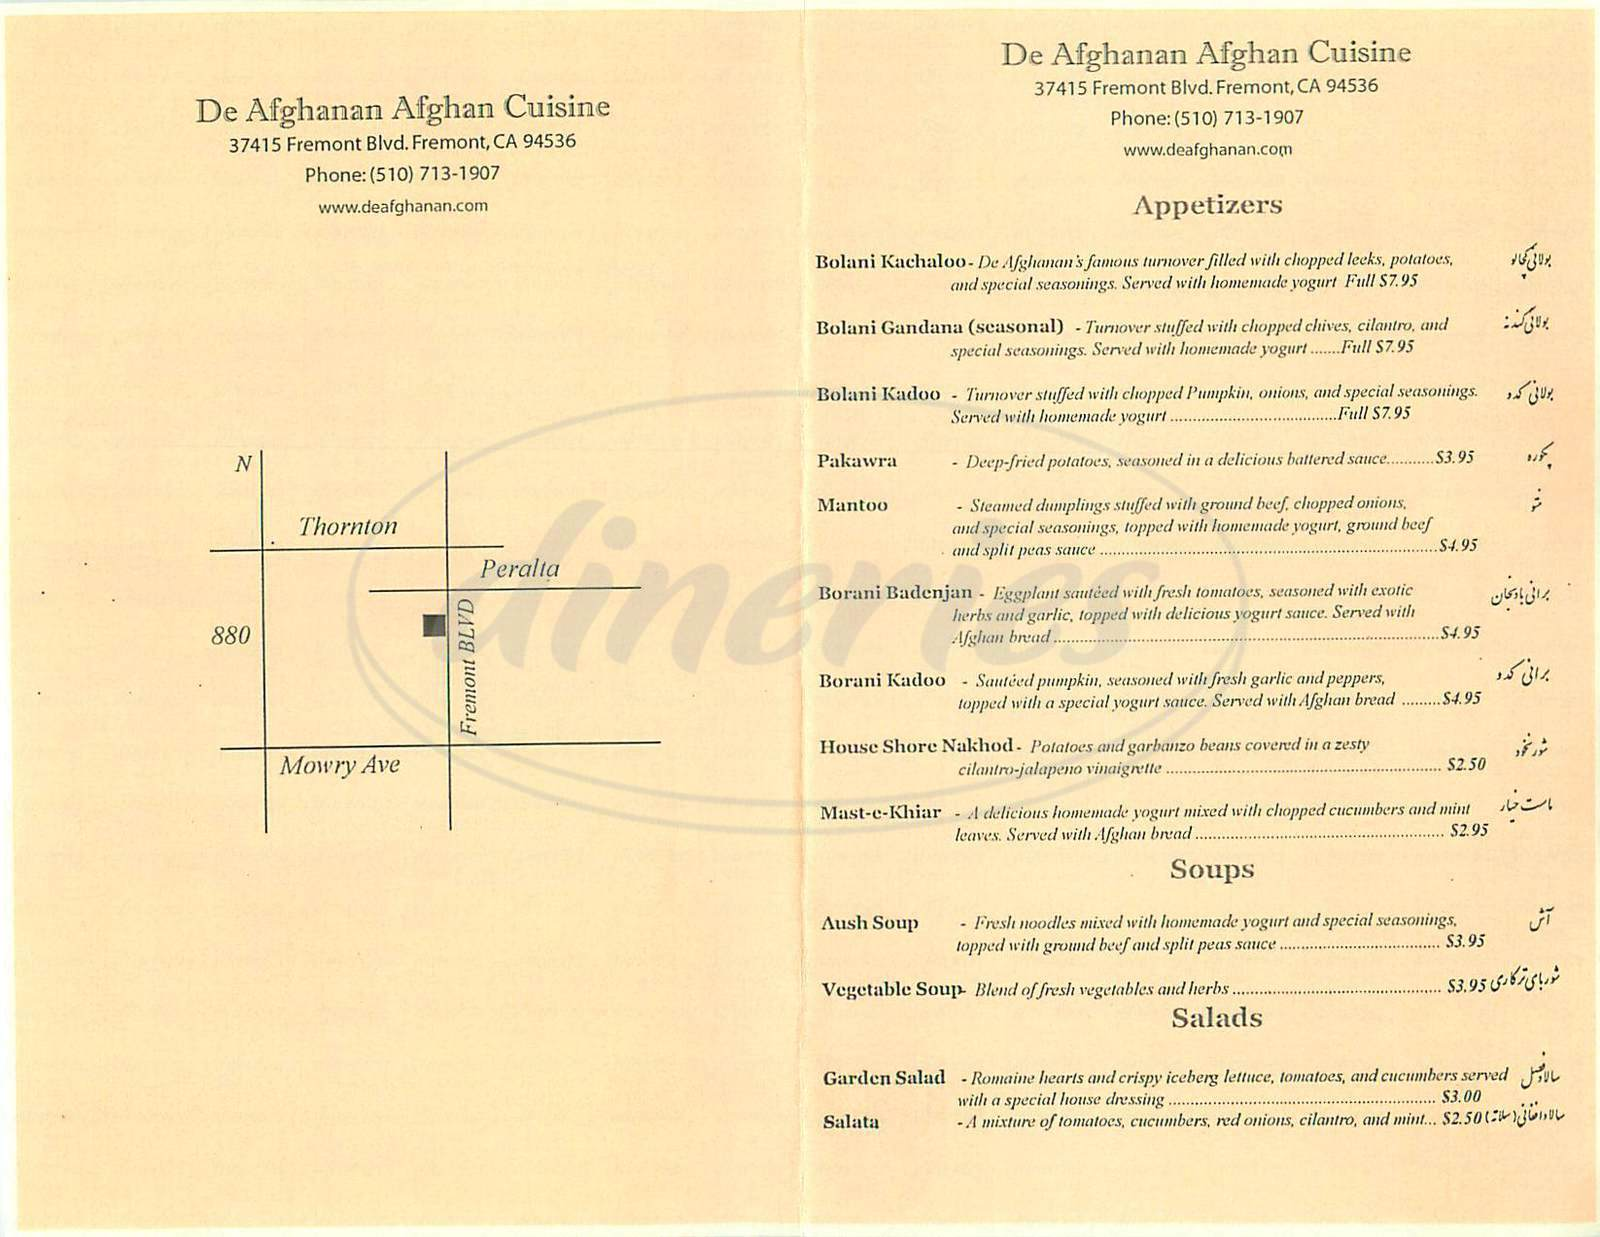 menu for De Afghanan Afghan Cuisine